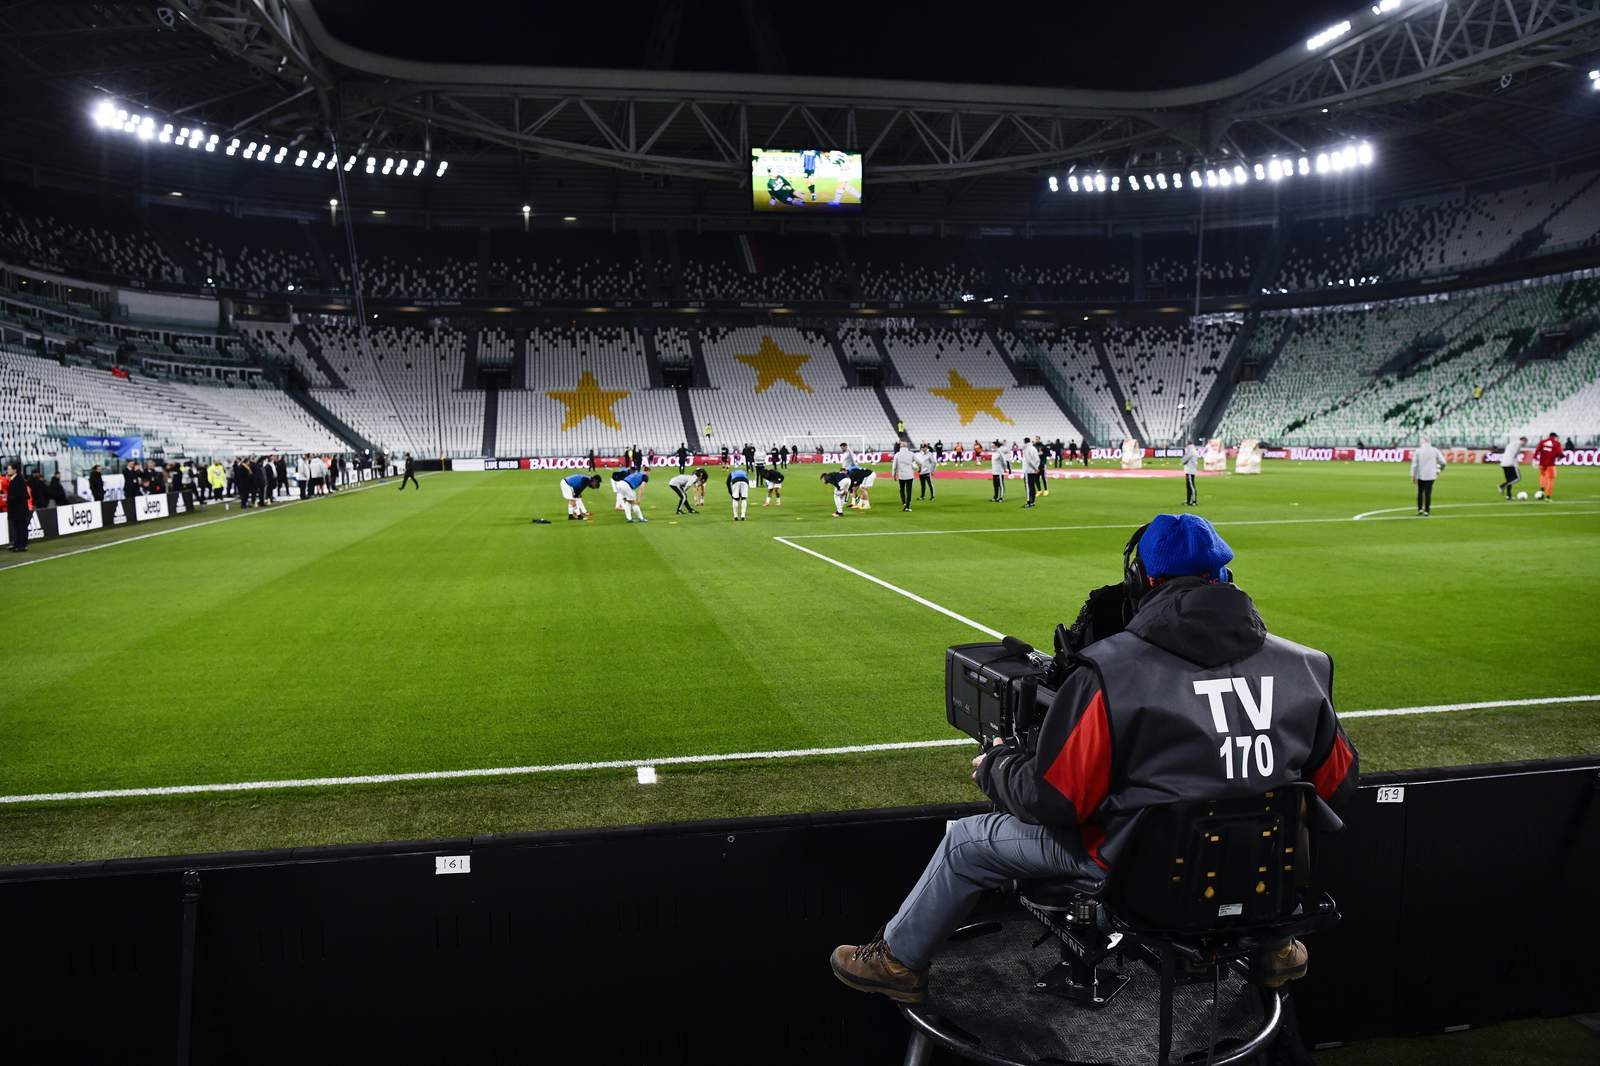 The Best Juventus Stadium 2020